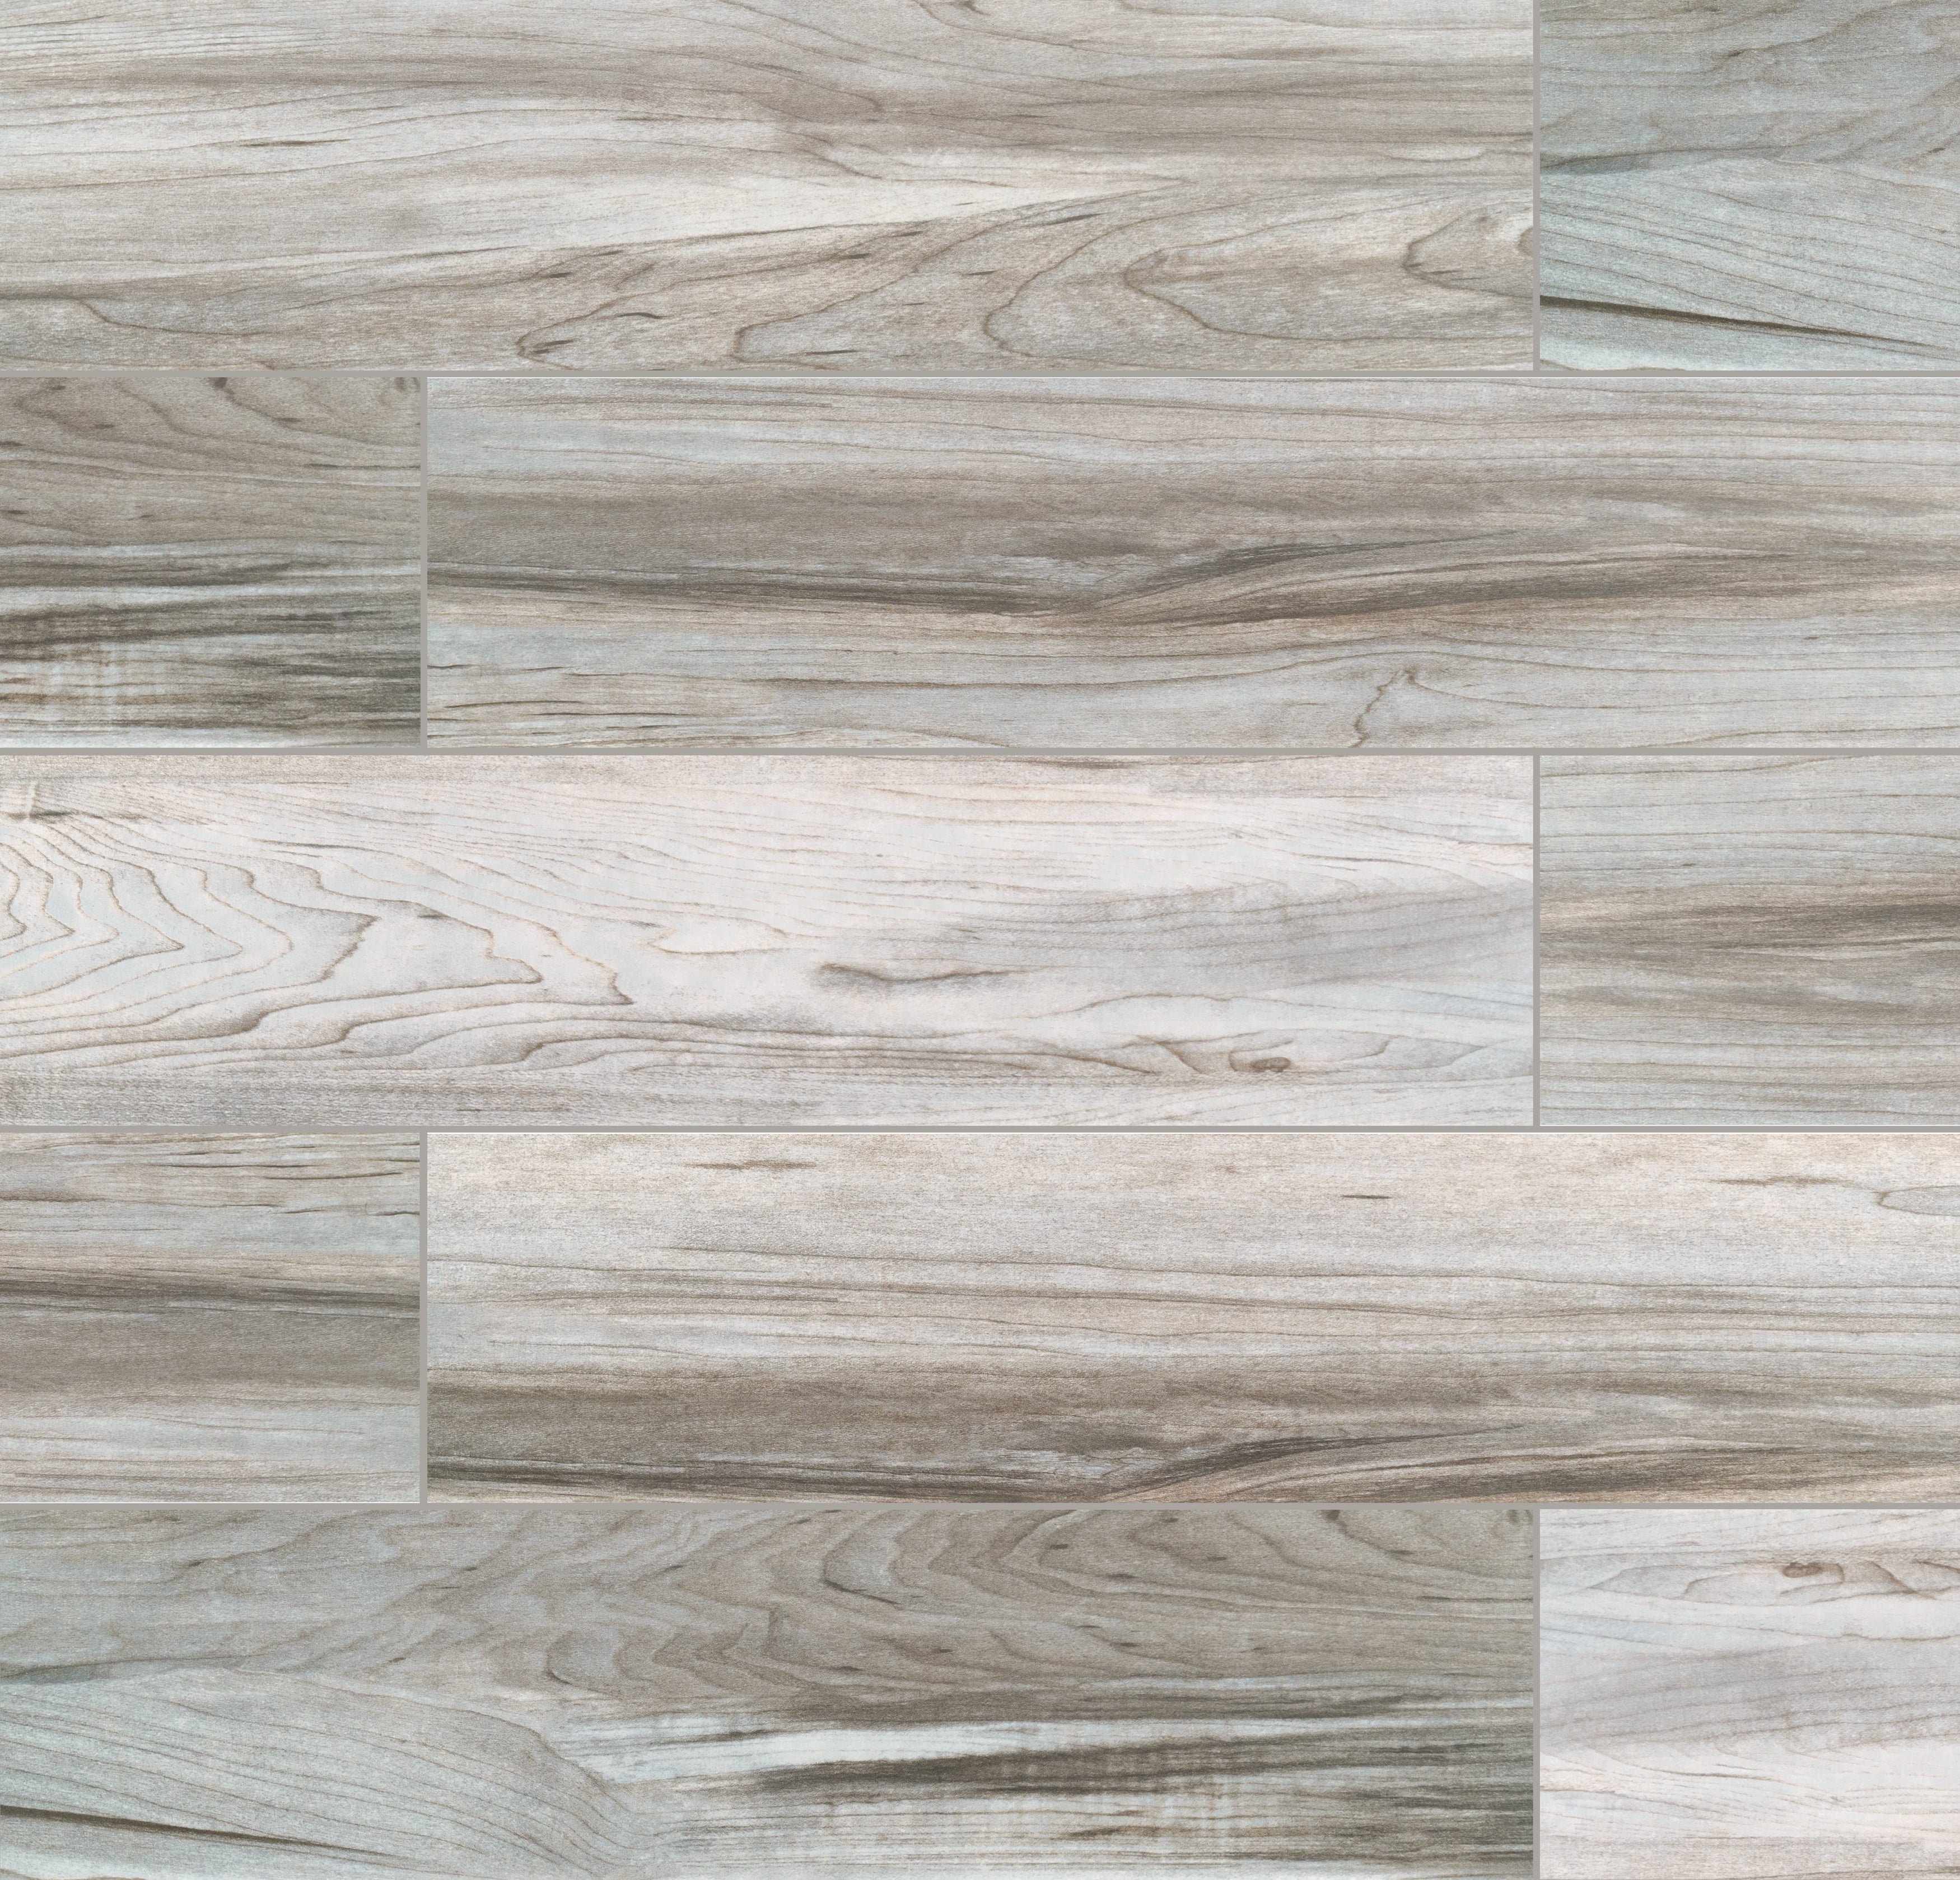 carolina timber grey 6 in x 24 in glazed ceramic floor and wall tile 16 sq ft case walmart com